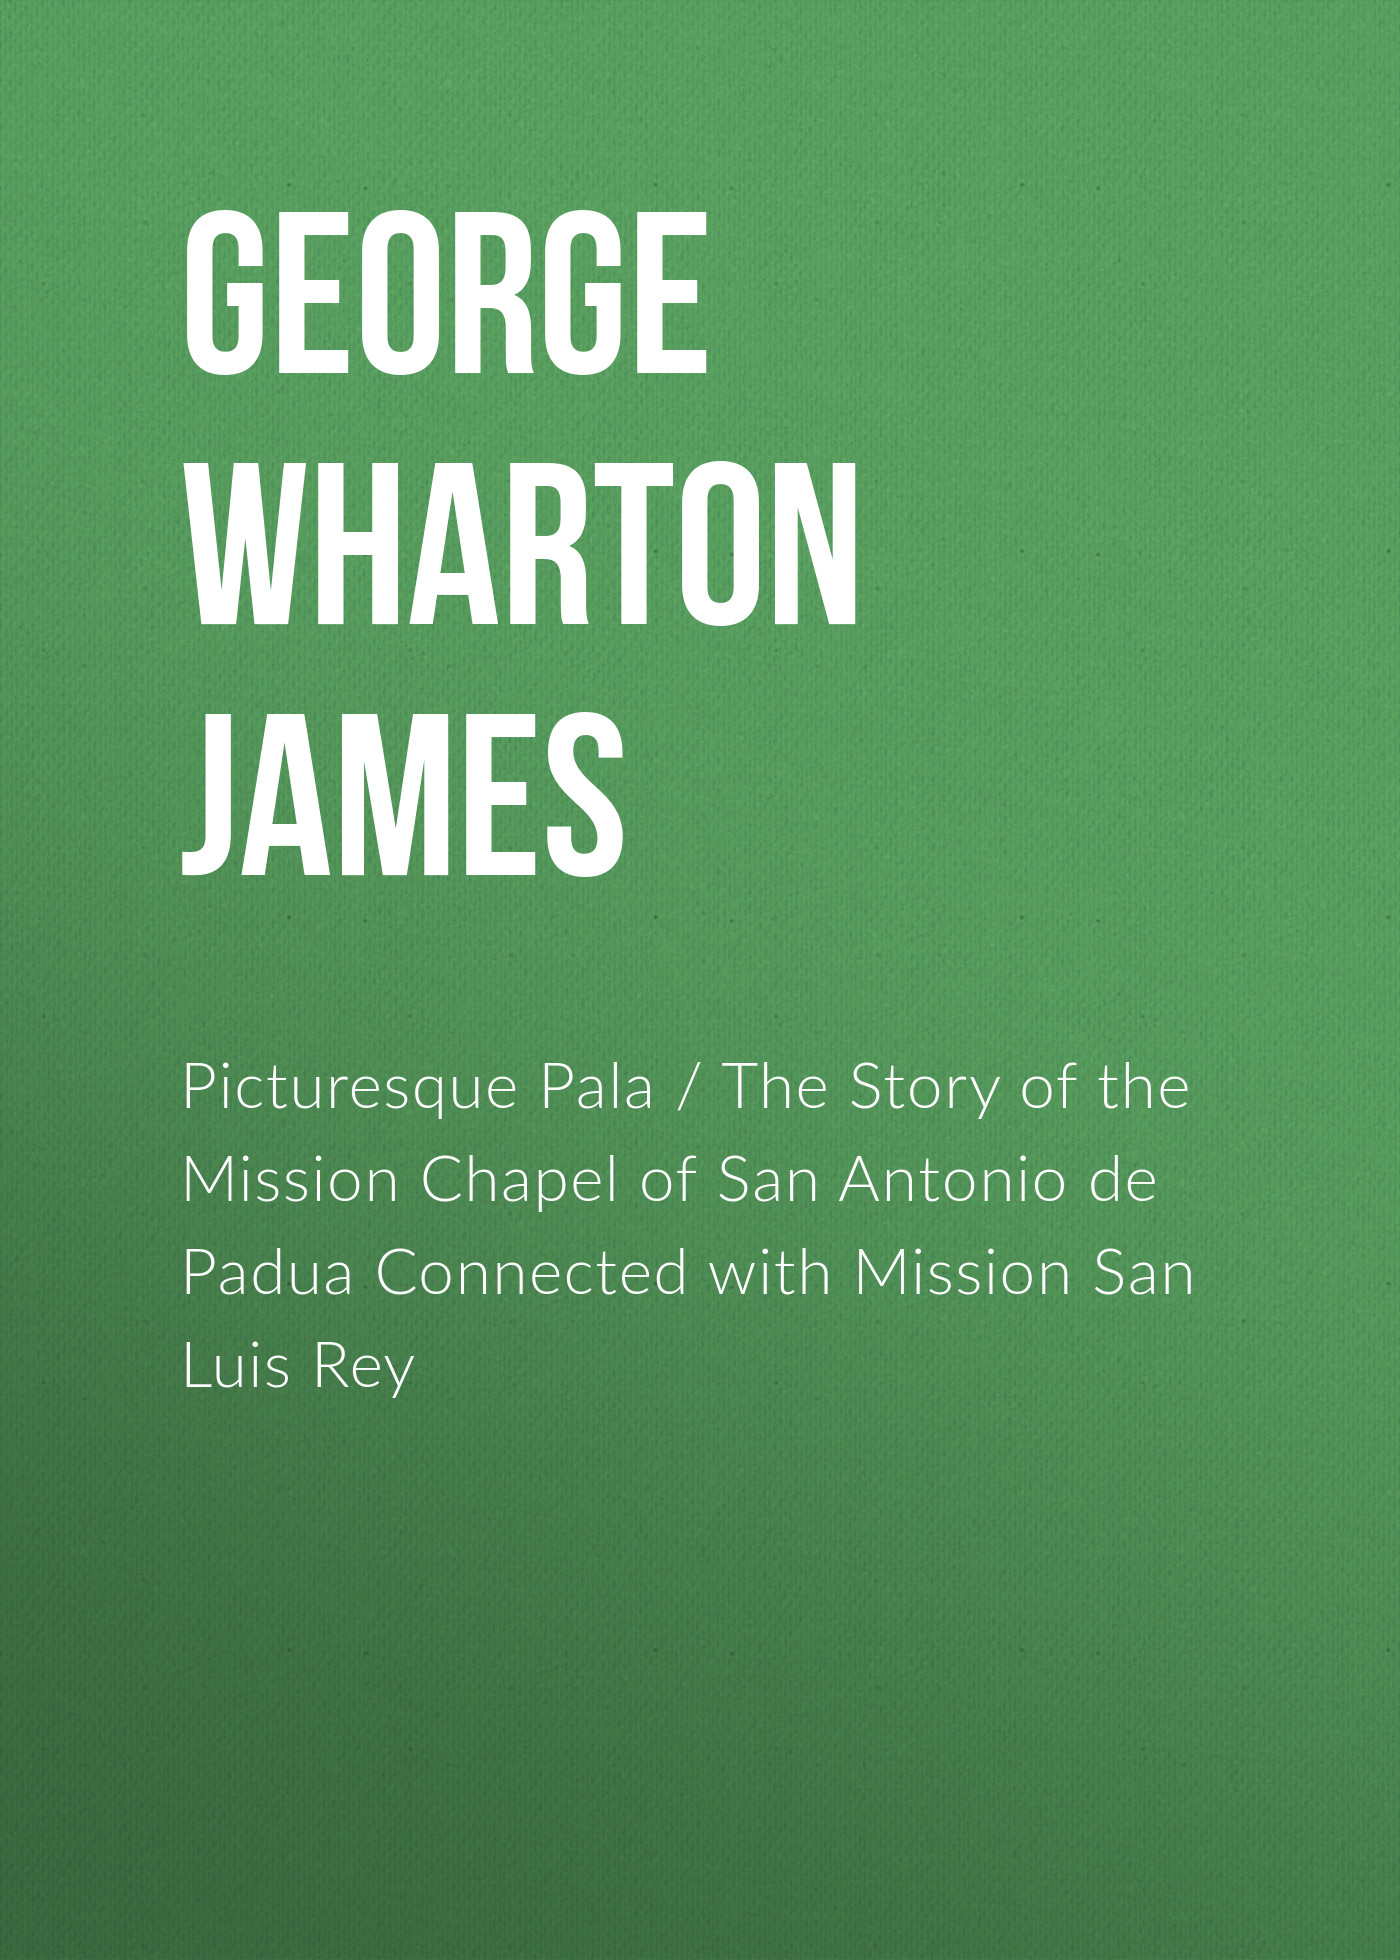 George Wharton James Picturesque Pala / The Story of the Mission Chapel of San Antonio de Padua Connected with Mission San Luis Rey lee fanning mission monsters the inhuman zoo super science showcase